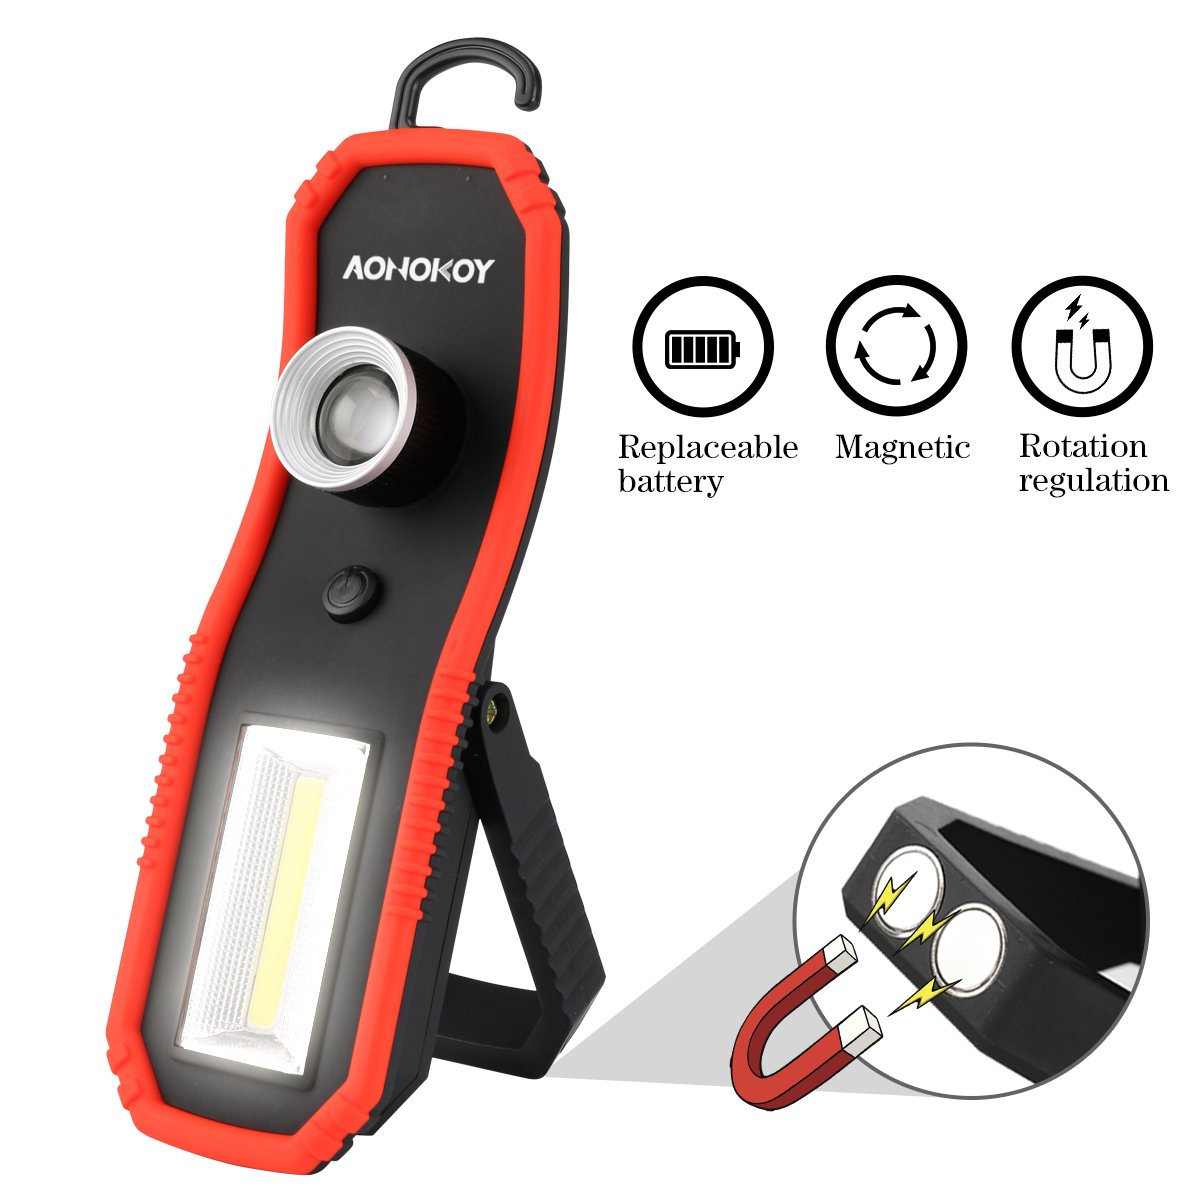 Portable LED Work Lights,Focus Function Multi-use 100LM XPE LED and 200LM COB,Waterproof Magnetic Base & Hanging Hook for Outdoor,Car Repairing, Blackout,Emergency,Travel and Indoor by AONOKOY